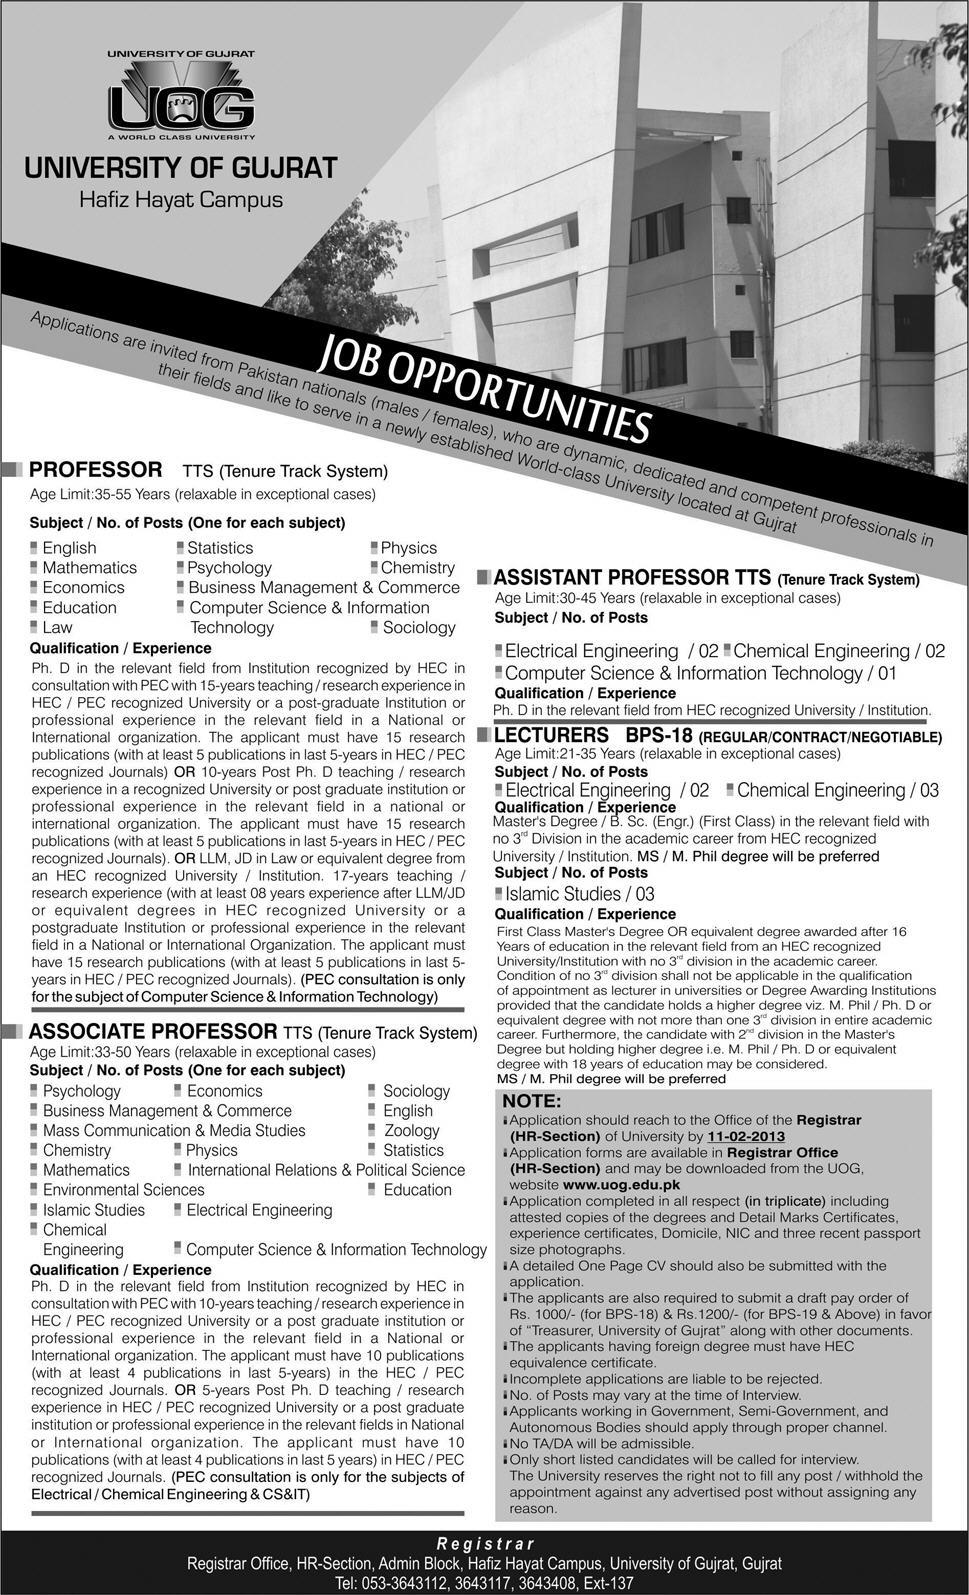 University of Gujrat Jobs 2013 for Faculty